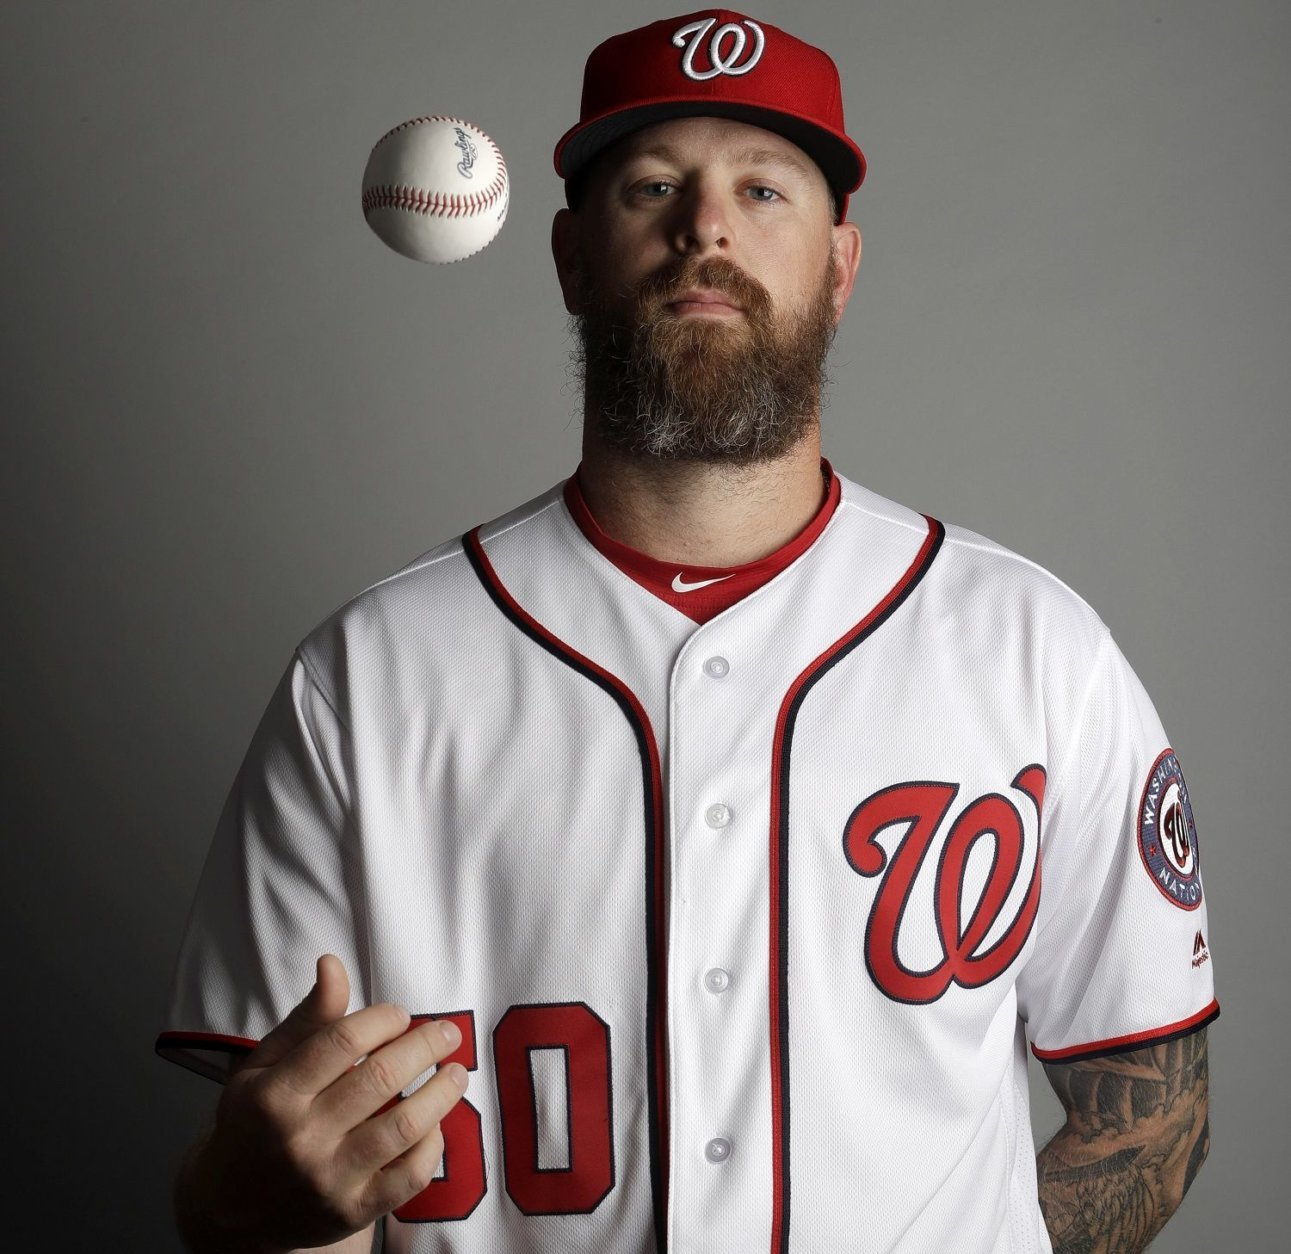 This is a 2019 photo of Justin Miller of the Washington Nationals baseball team. This image reflects the 2019 active roster as of Friday, Feb. 22, 2019, when this image was taken. (AP Photo/Jeff Roberson)